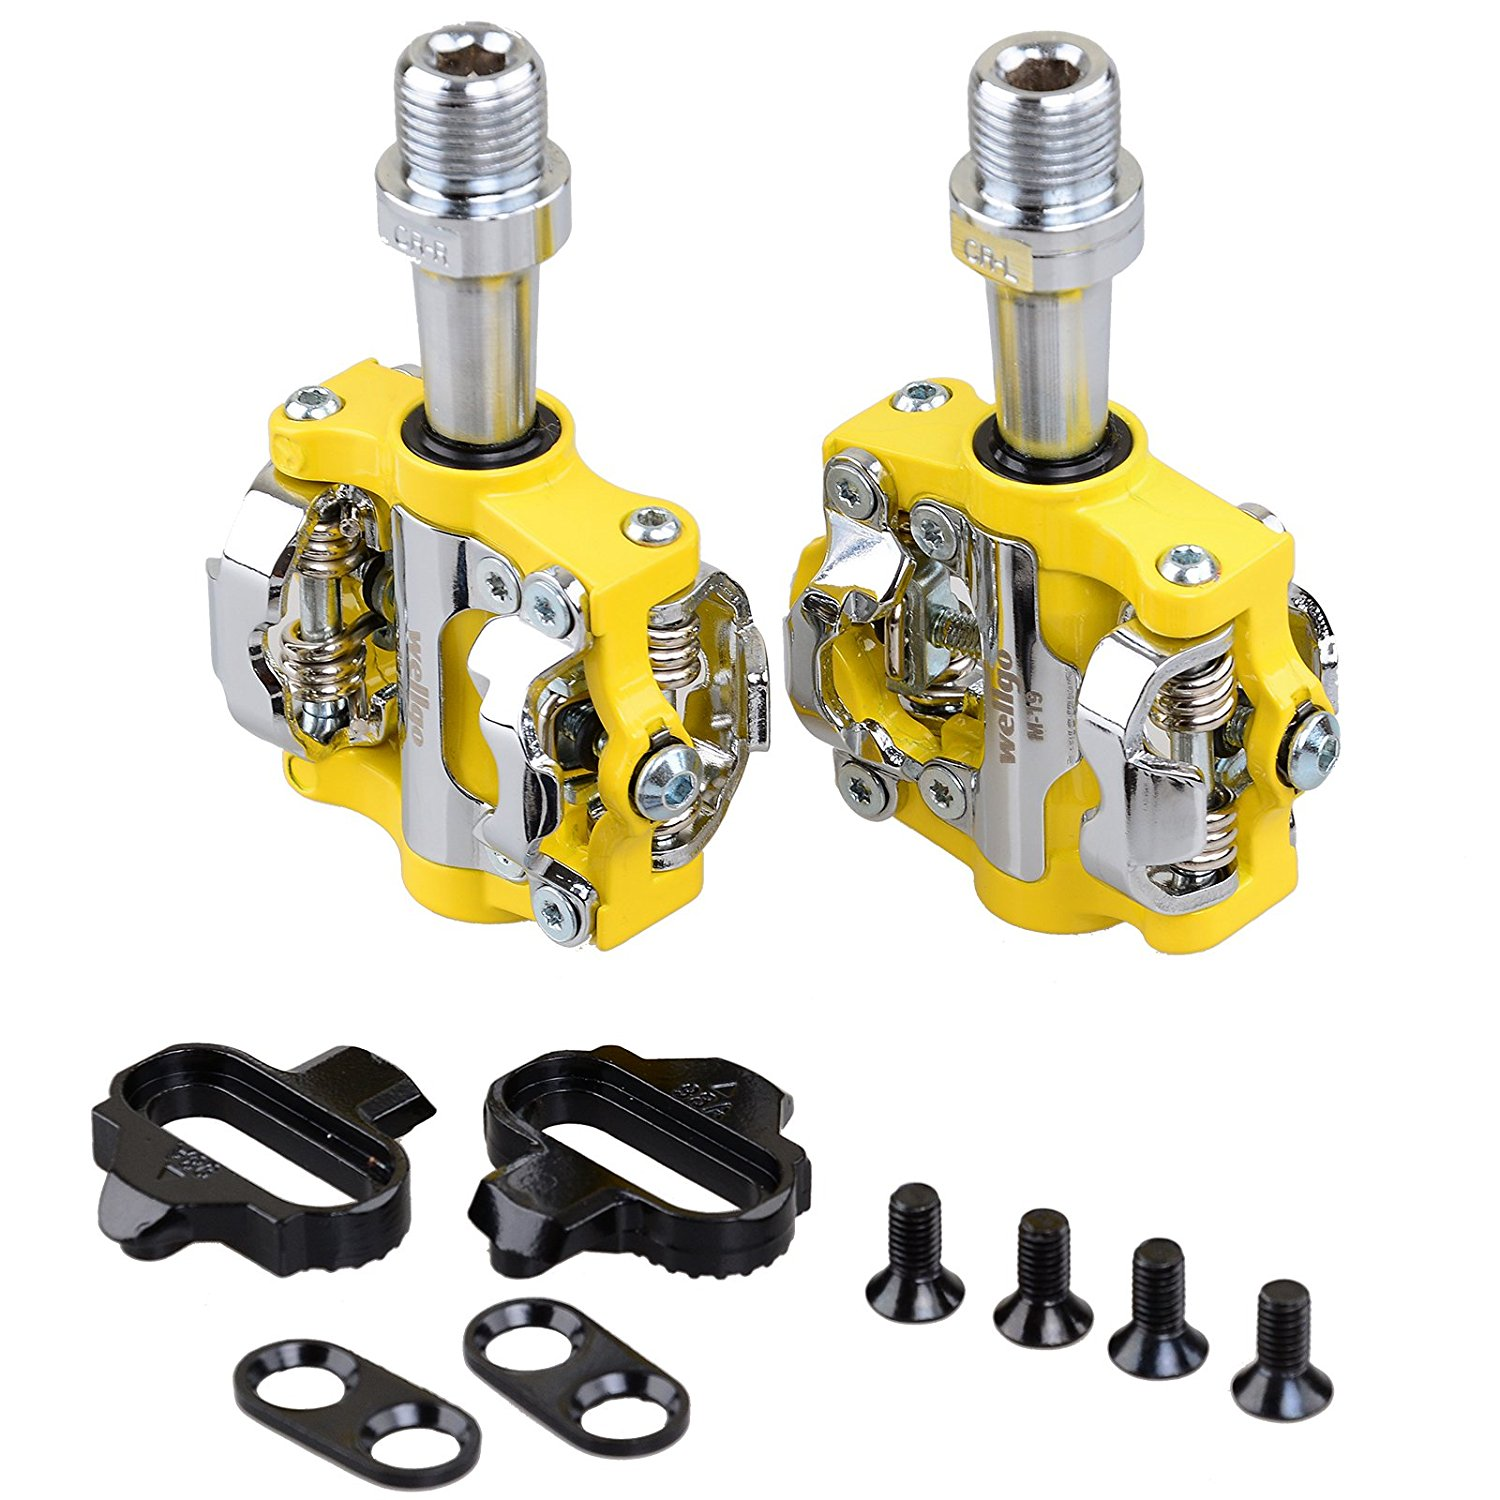 Wellgo MTB CR-MO SPD Clipless Pedals Mountain Bike Bicycle Cycling SPD Shoes Pedals & Cleats